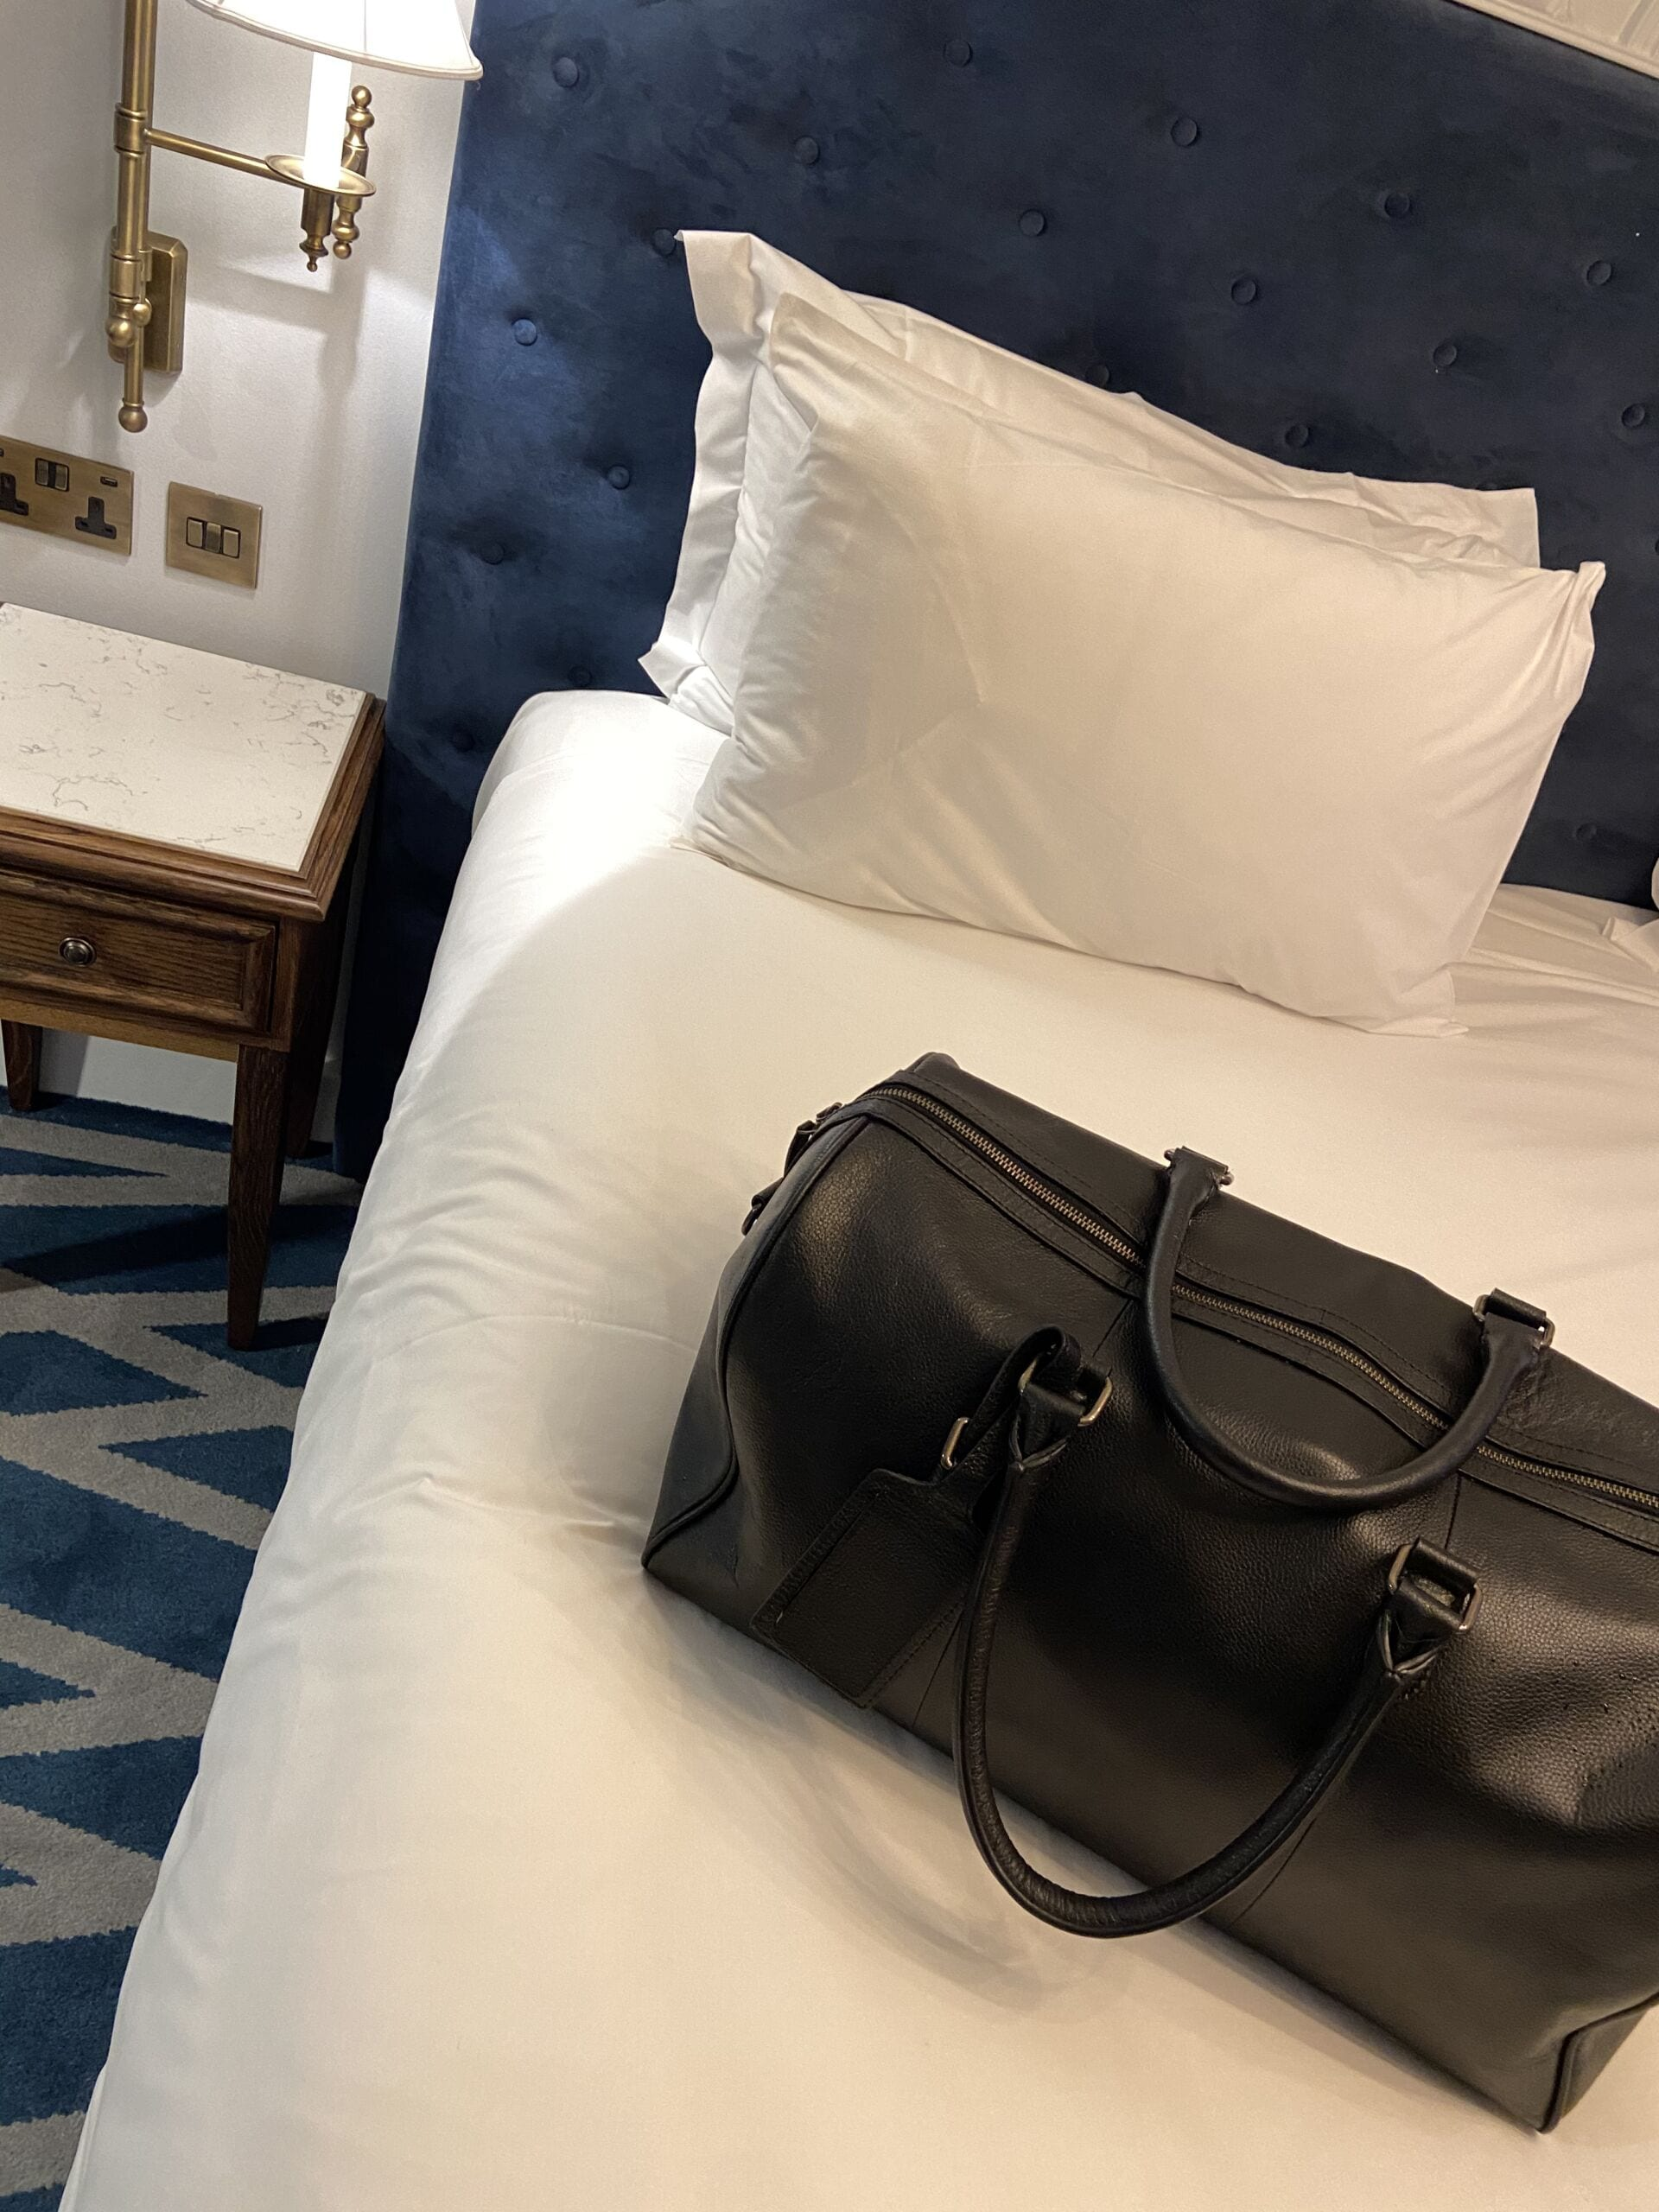 Bag on bed in Hotel